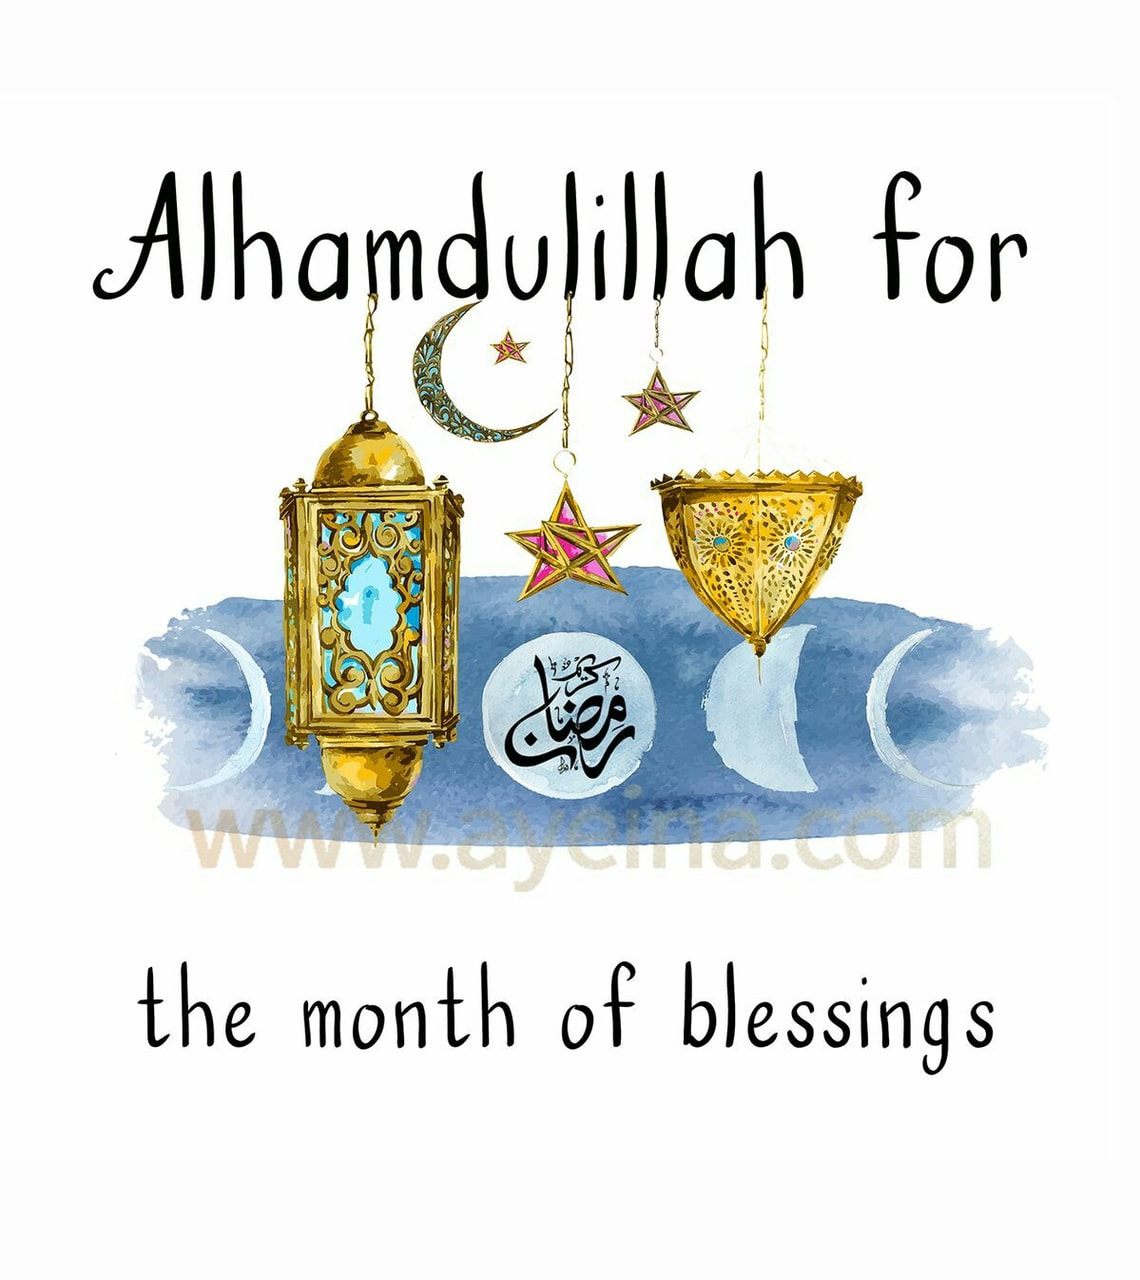 blessings, deen, months and müslimah